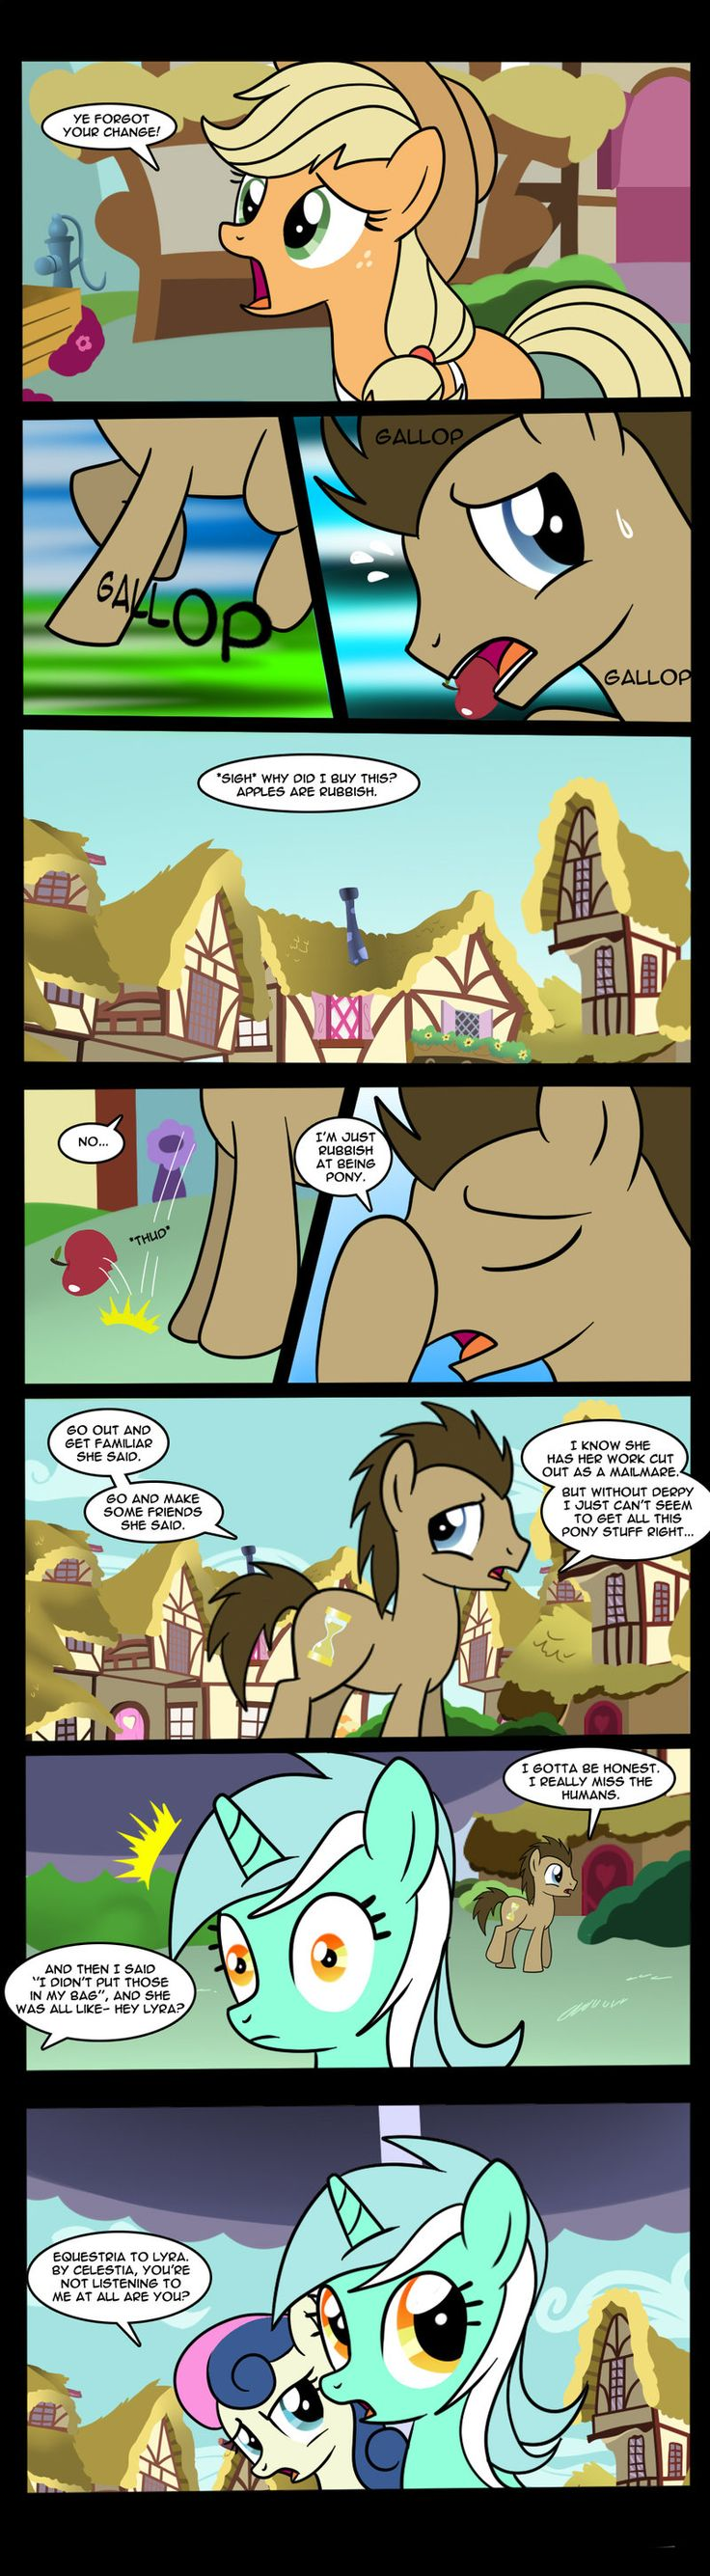 Doctor Whooves-This Is Where It Gets Complicated 1 by Edowaado.deviantart.com on @deviantART